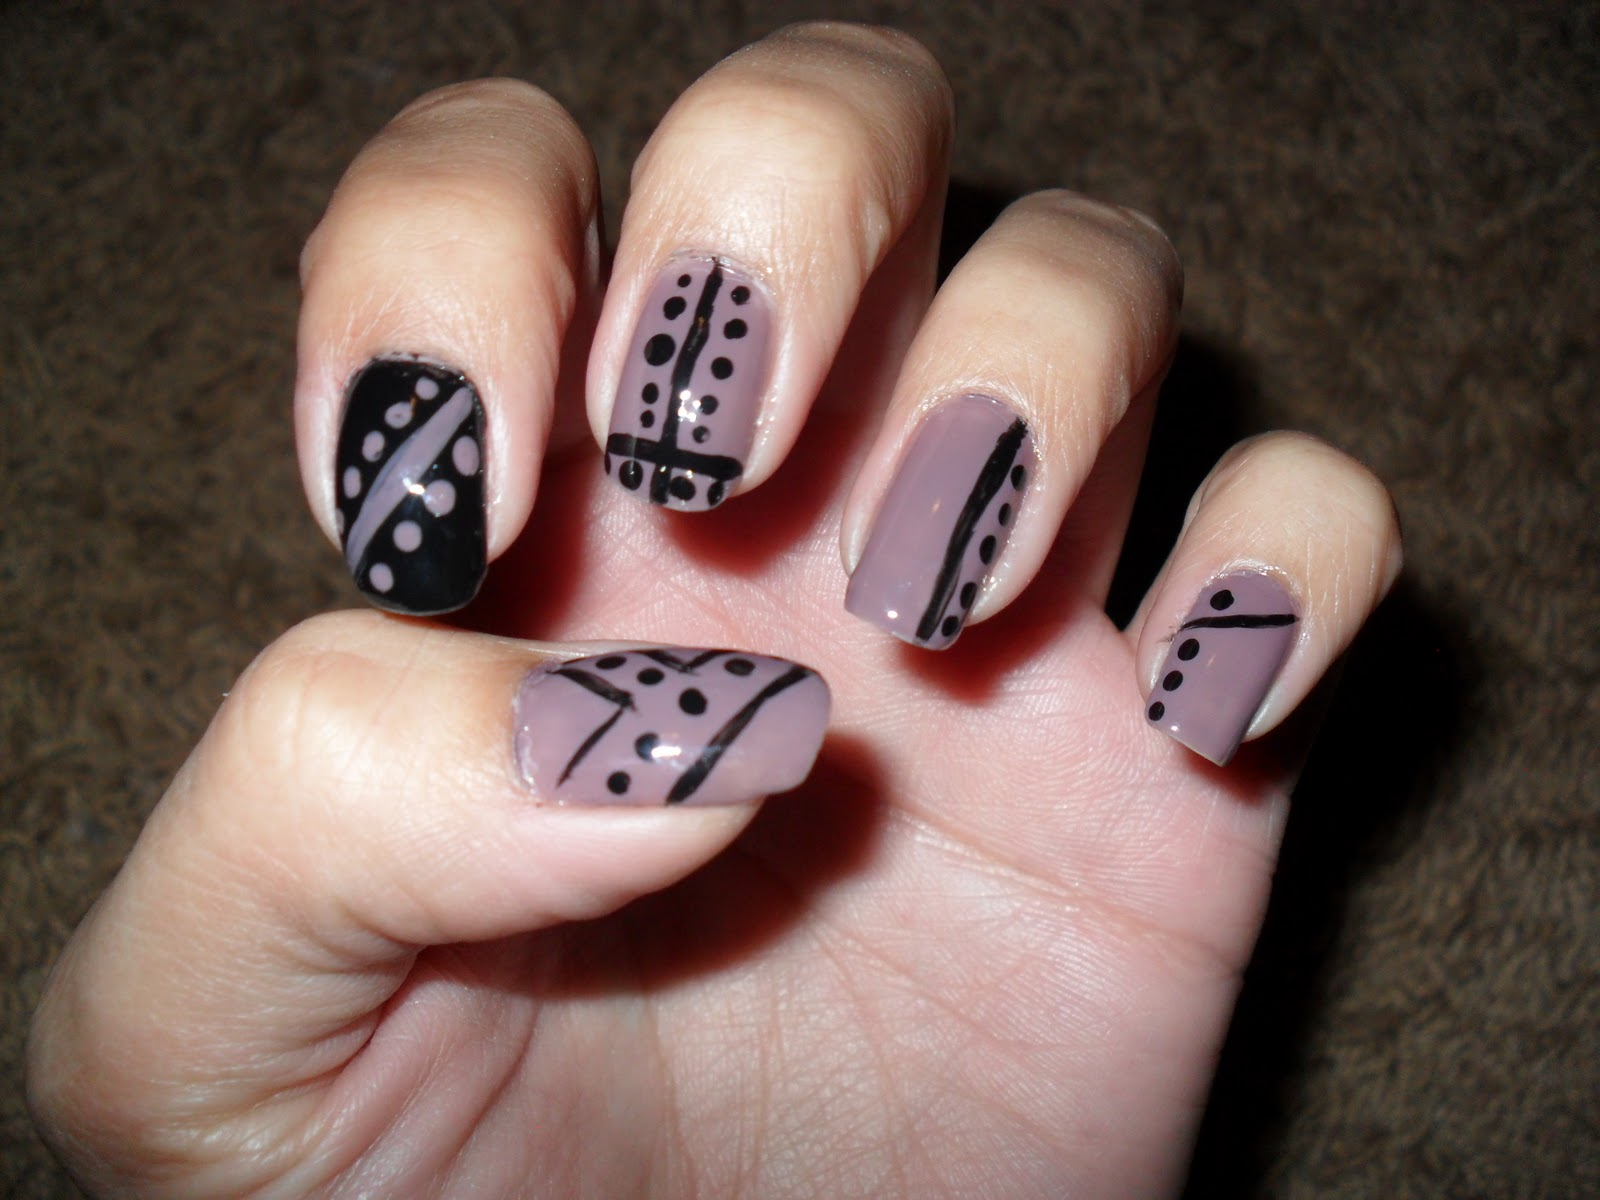 Nails design lines beautify themselves with sweet nails nails designs with lines dots and lines simple nail art designs ideas prinsesfo Image collections